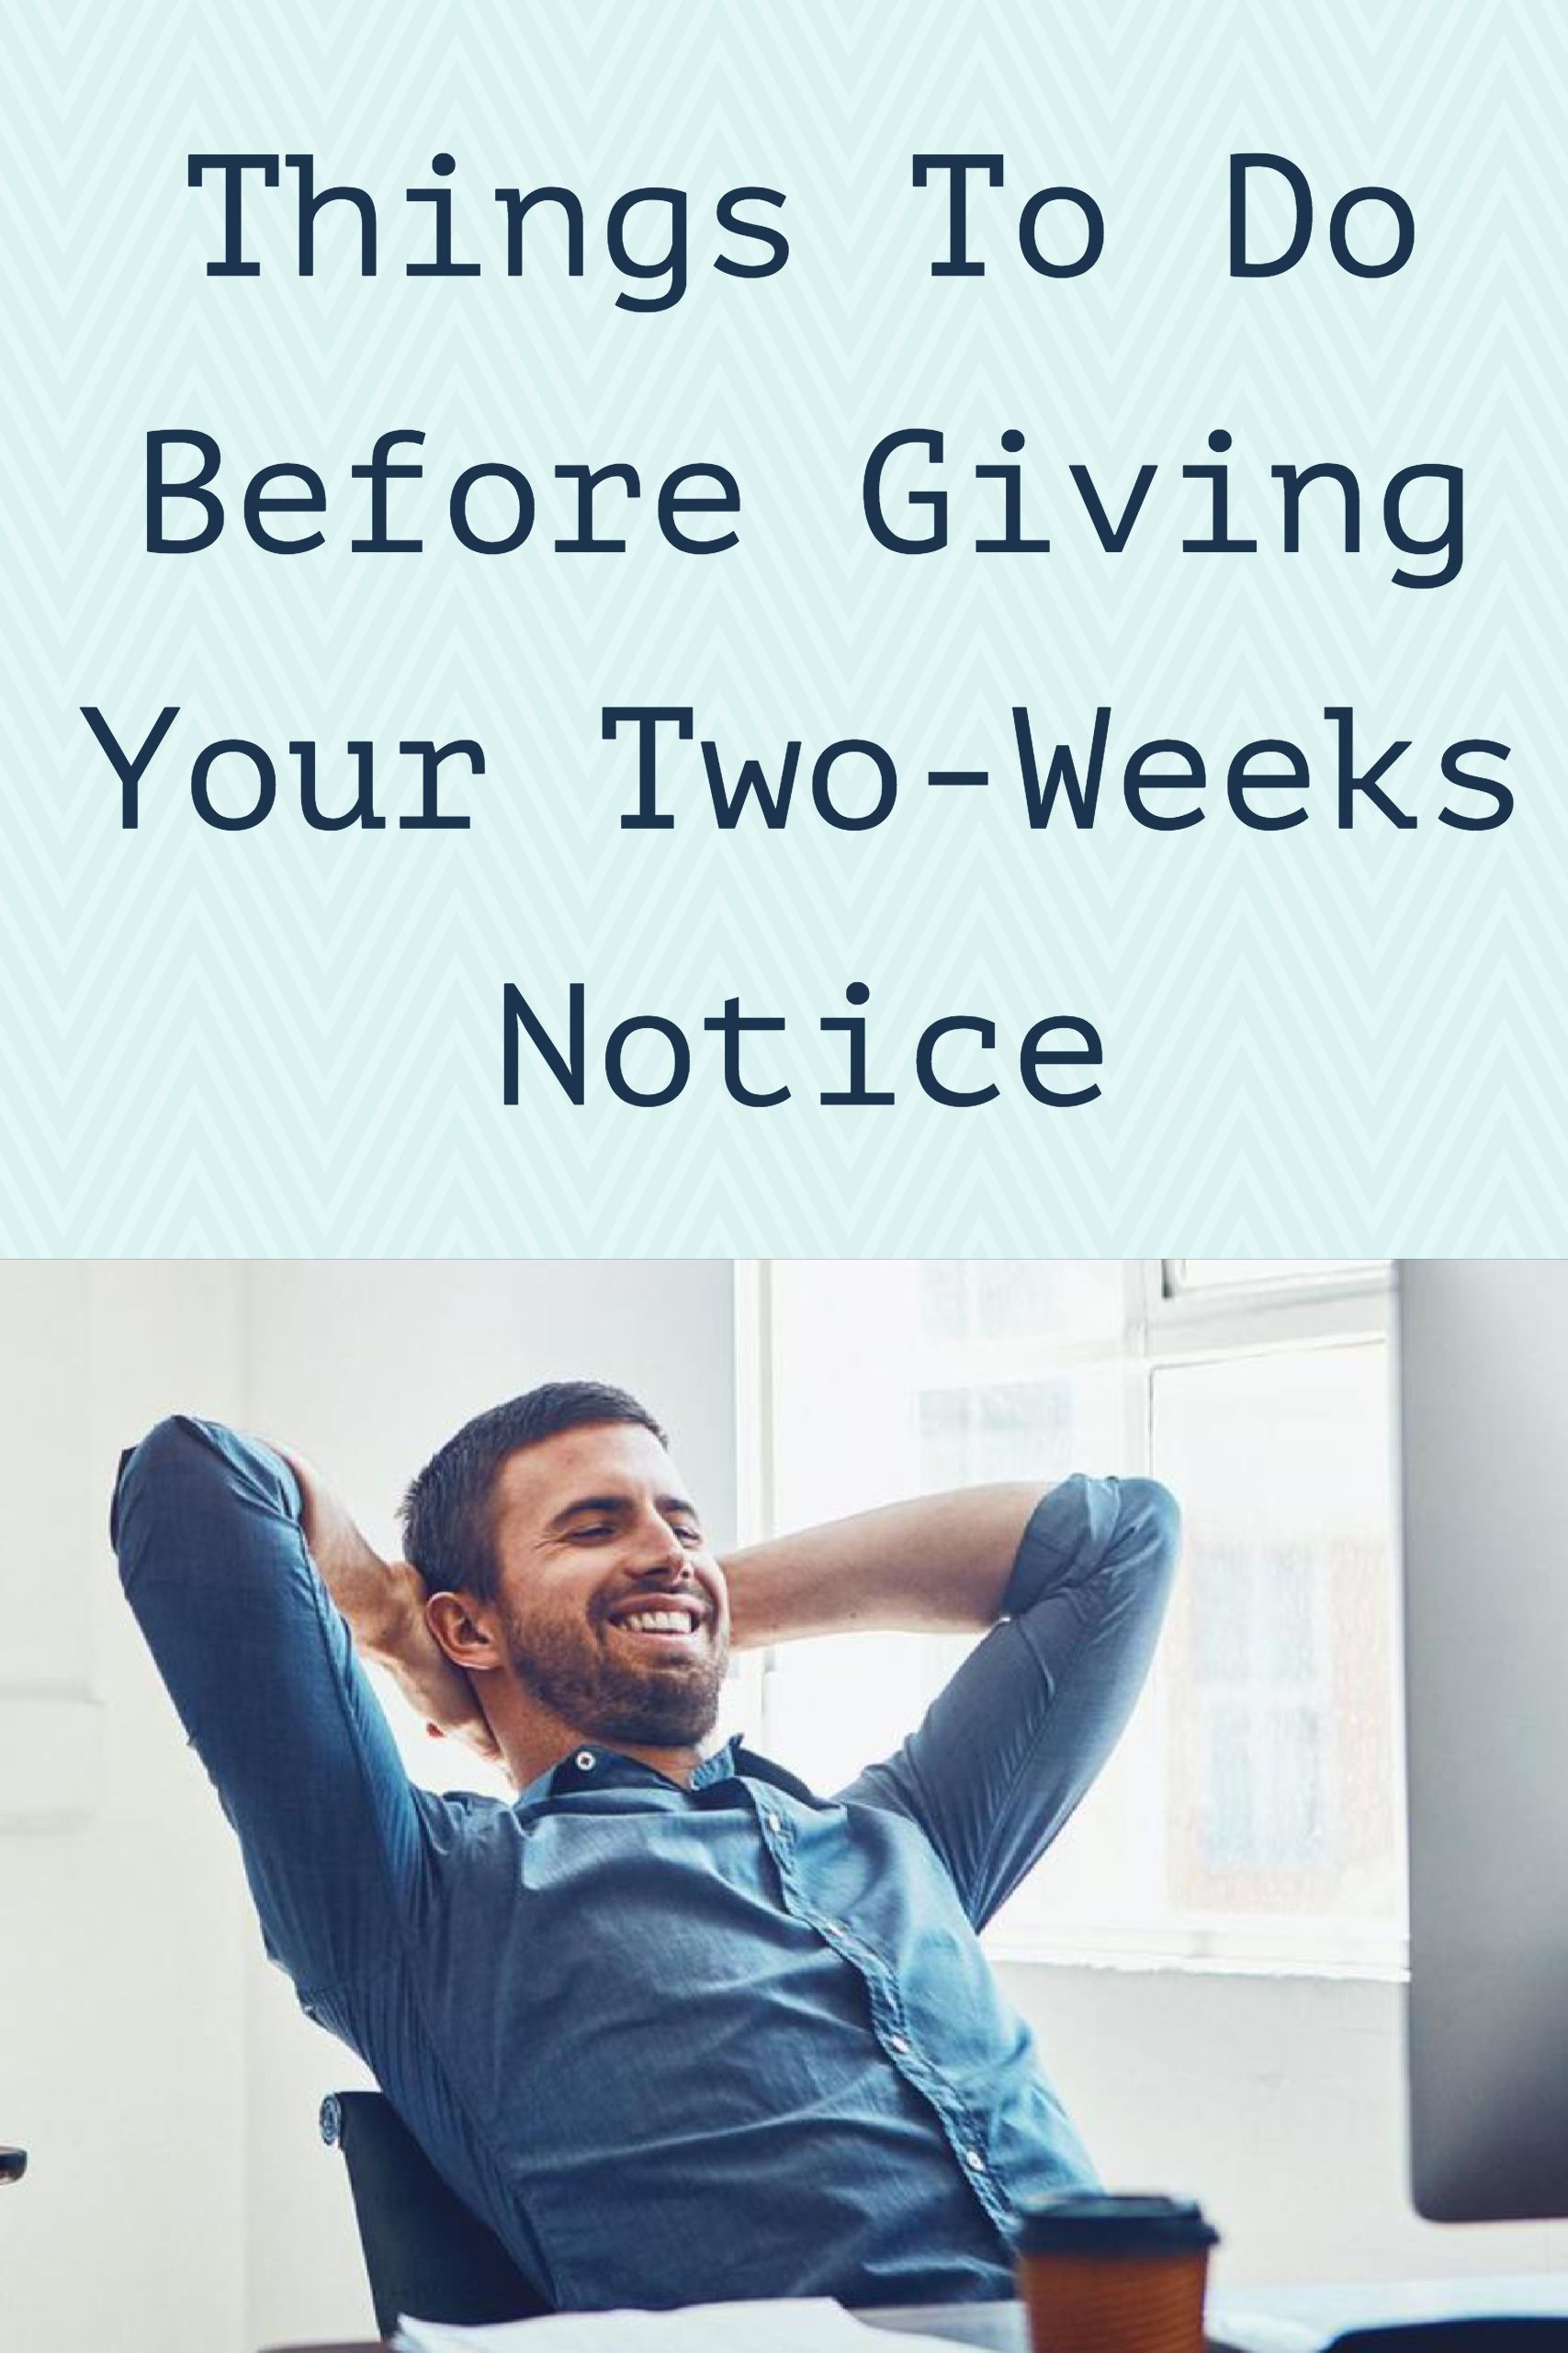 14 Things To Do Before Giving Your Two-Weeks Notice